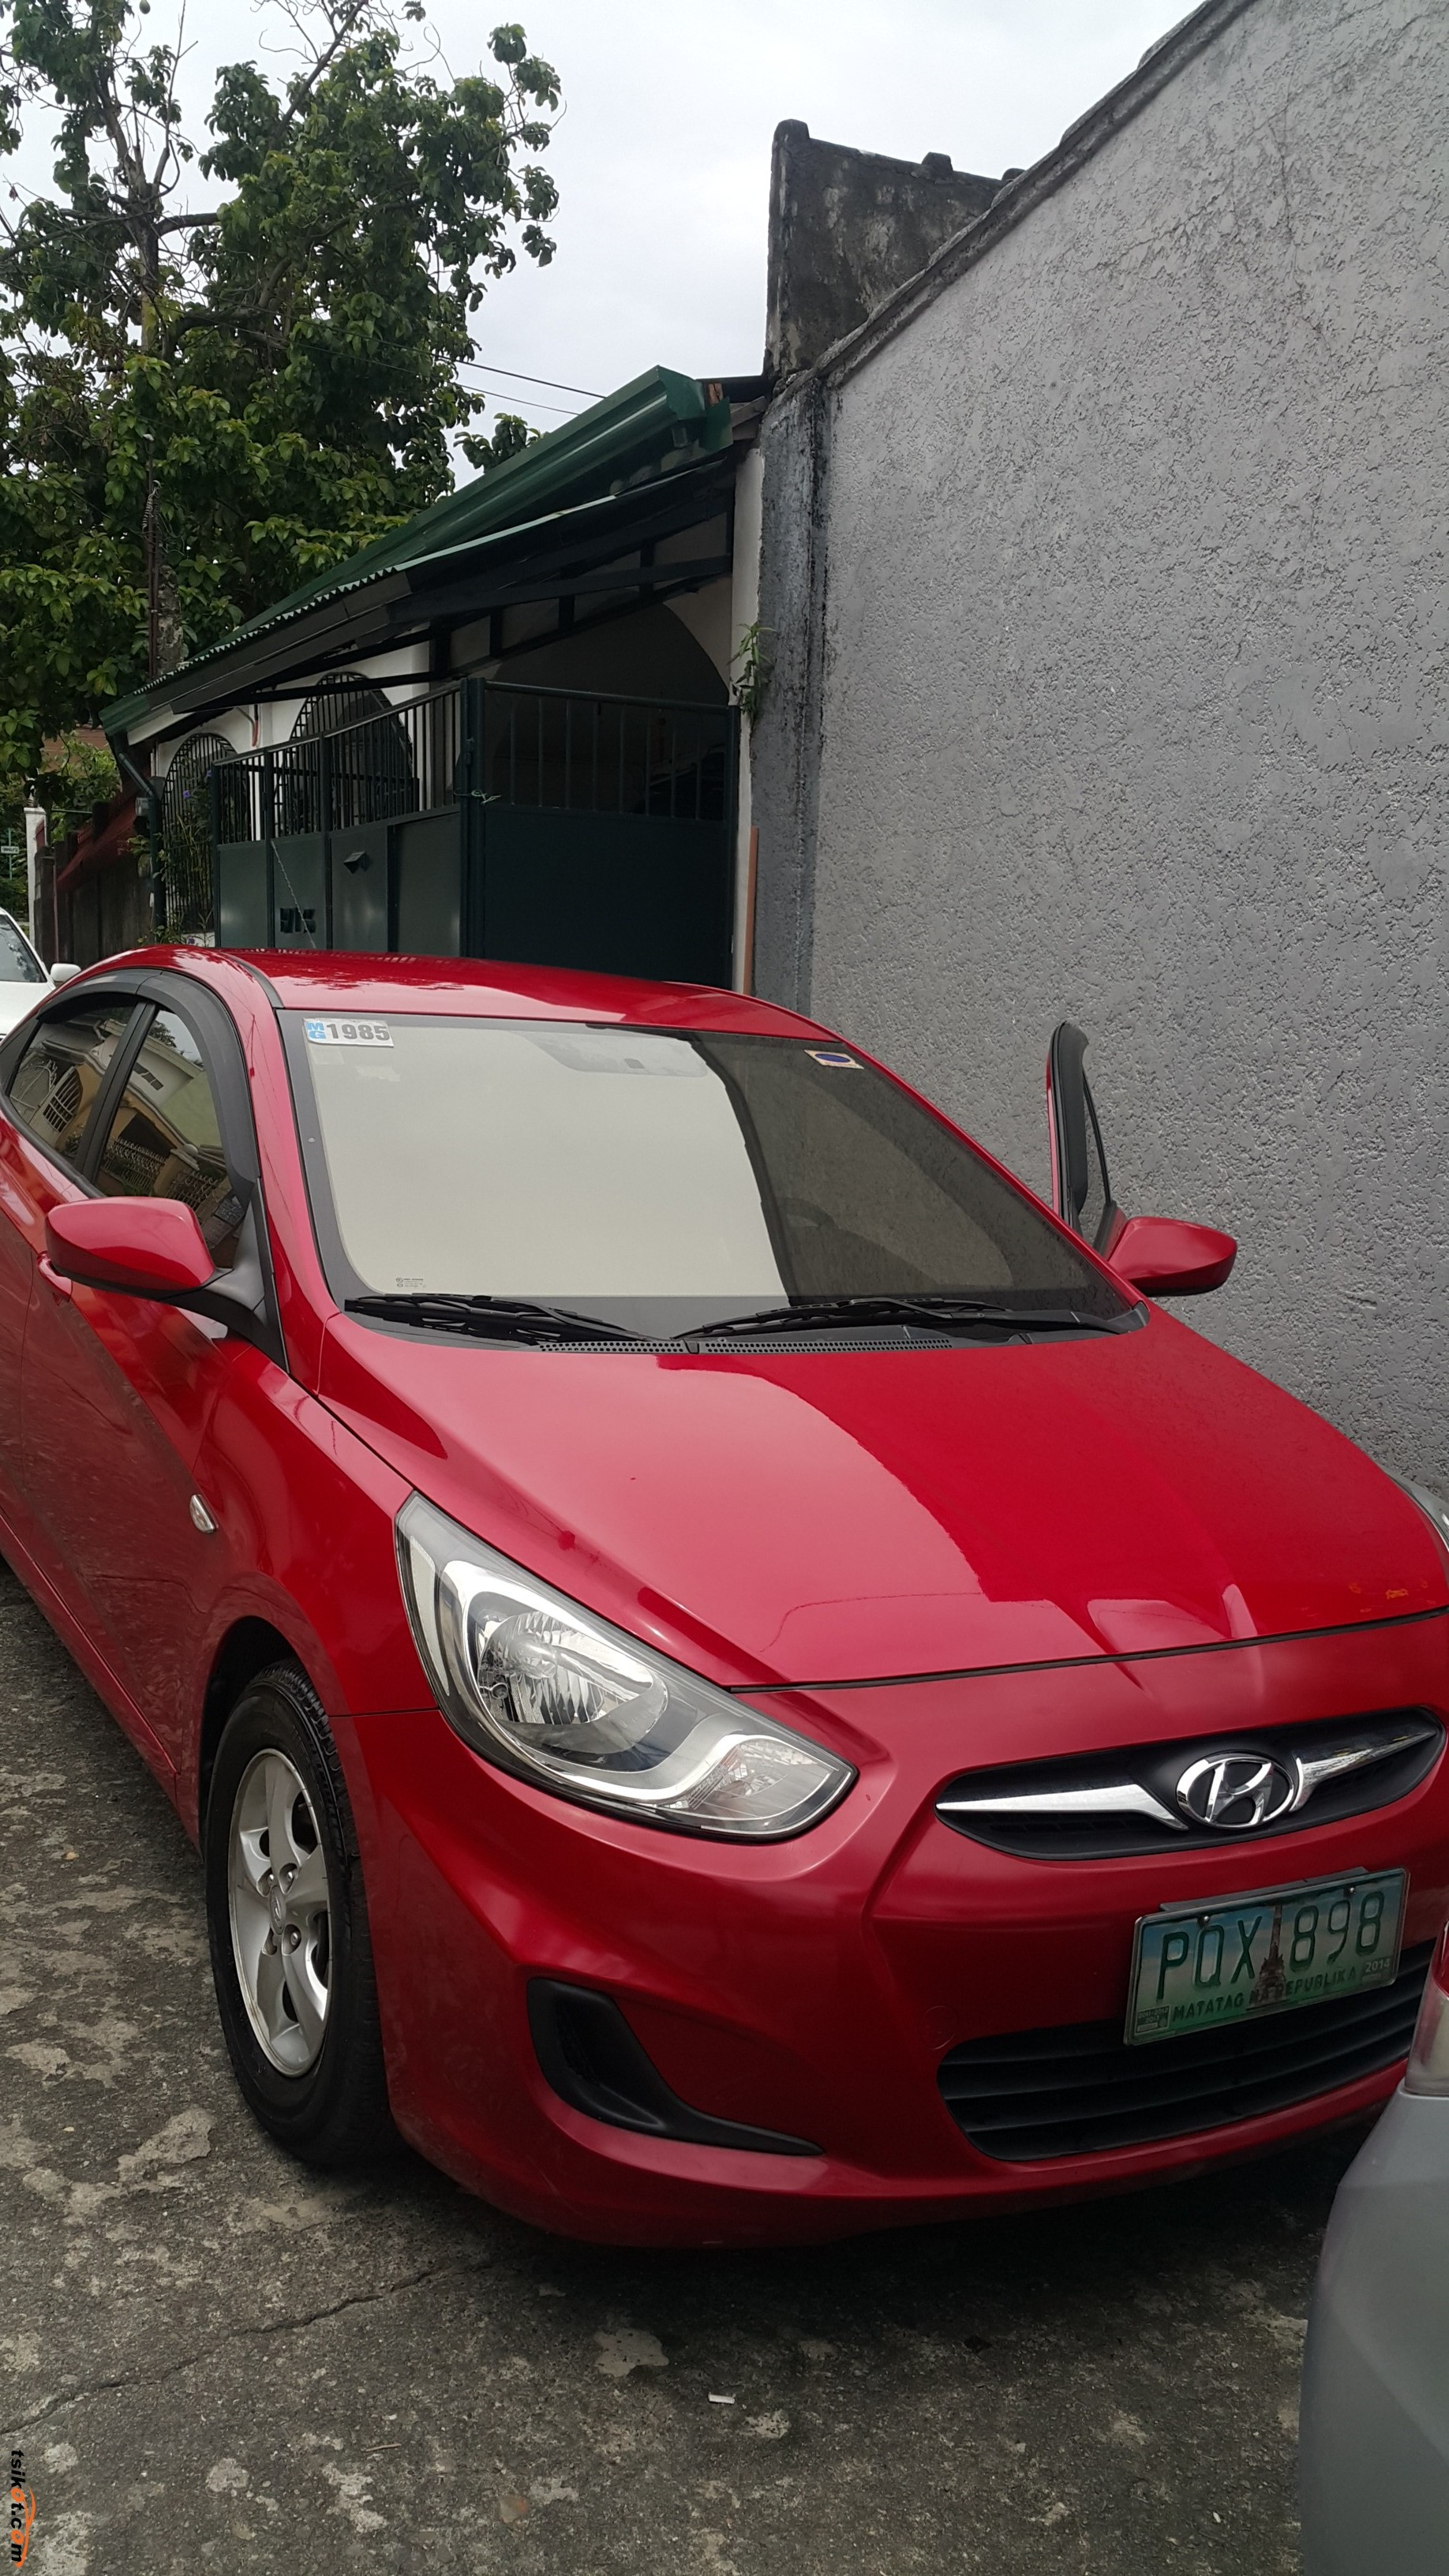 hyundai accent 2011 car for sale metro manila philippines. Black Bedroom Furniture Sets. Home Design Ideas